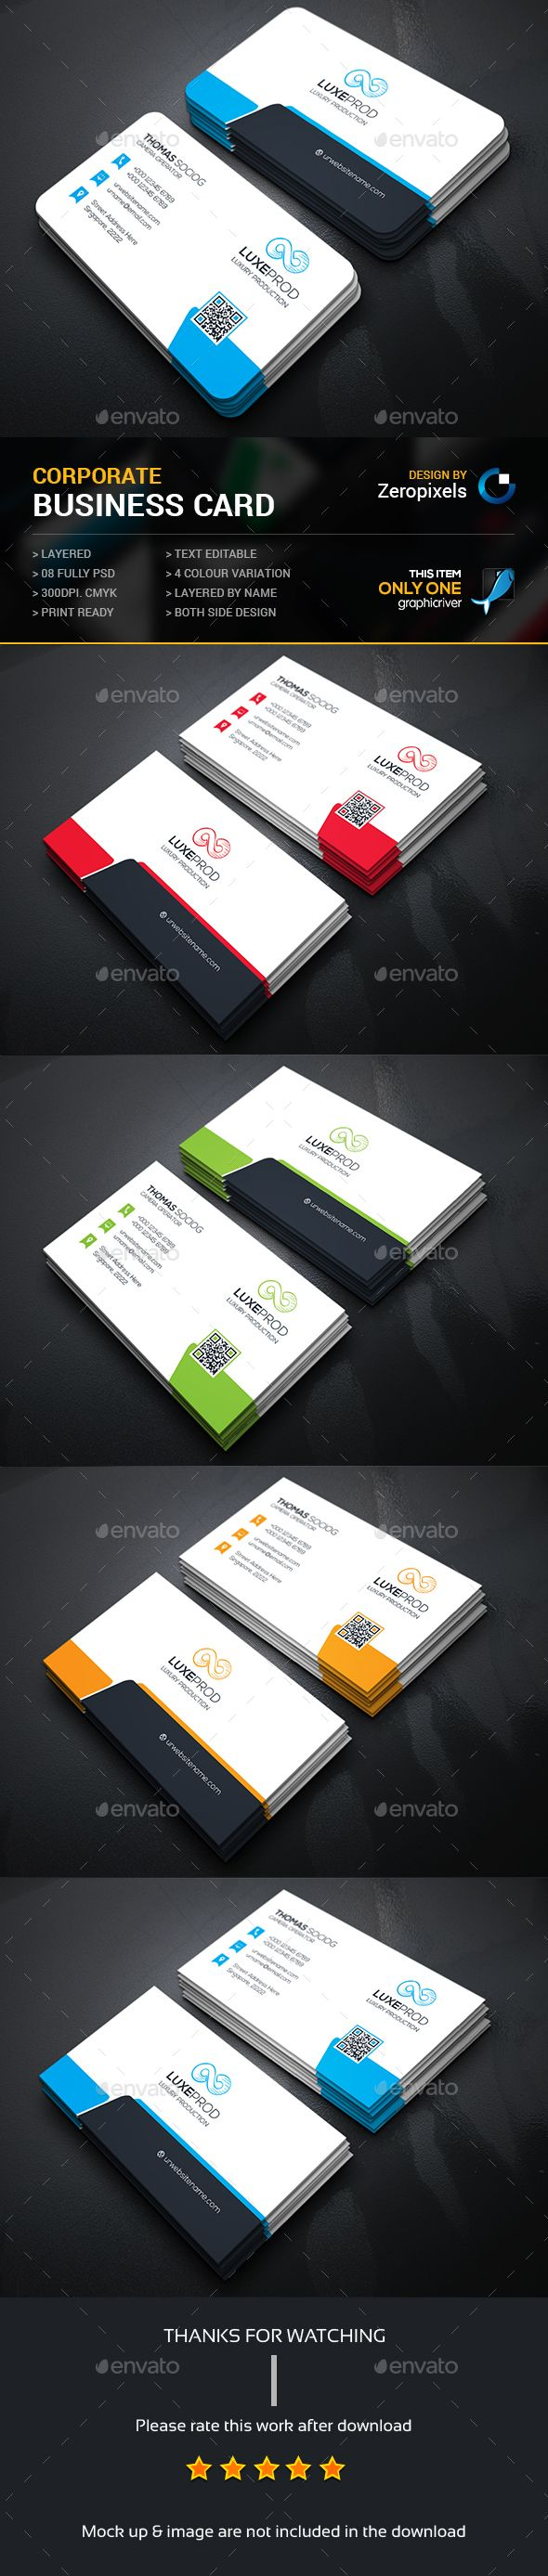 Creative Business Card — Photoshop PSD #pack #green • Available here → https://graphicriver.net/item/creative-business-card/15064047?ref=pxcr